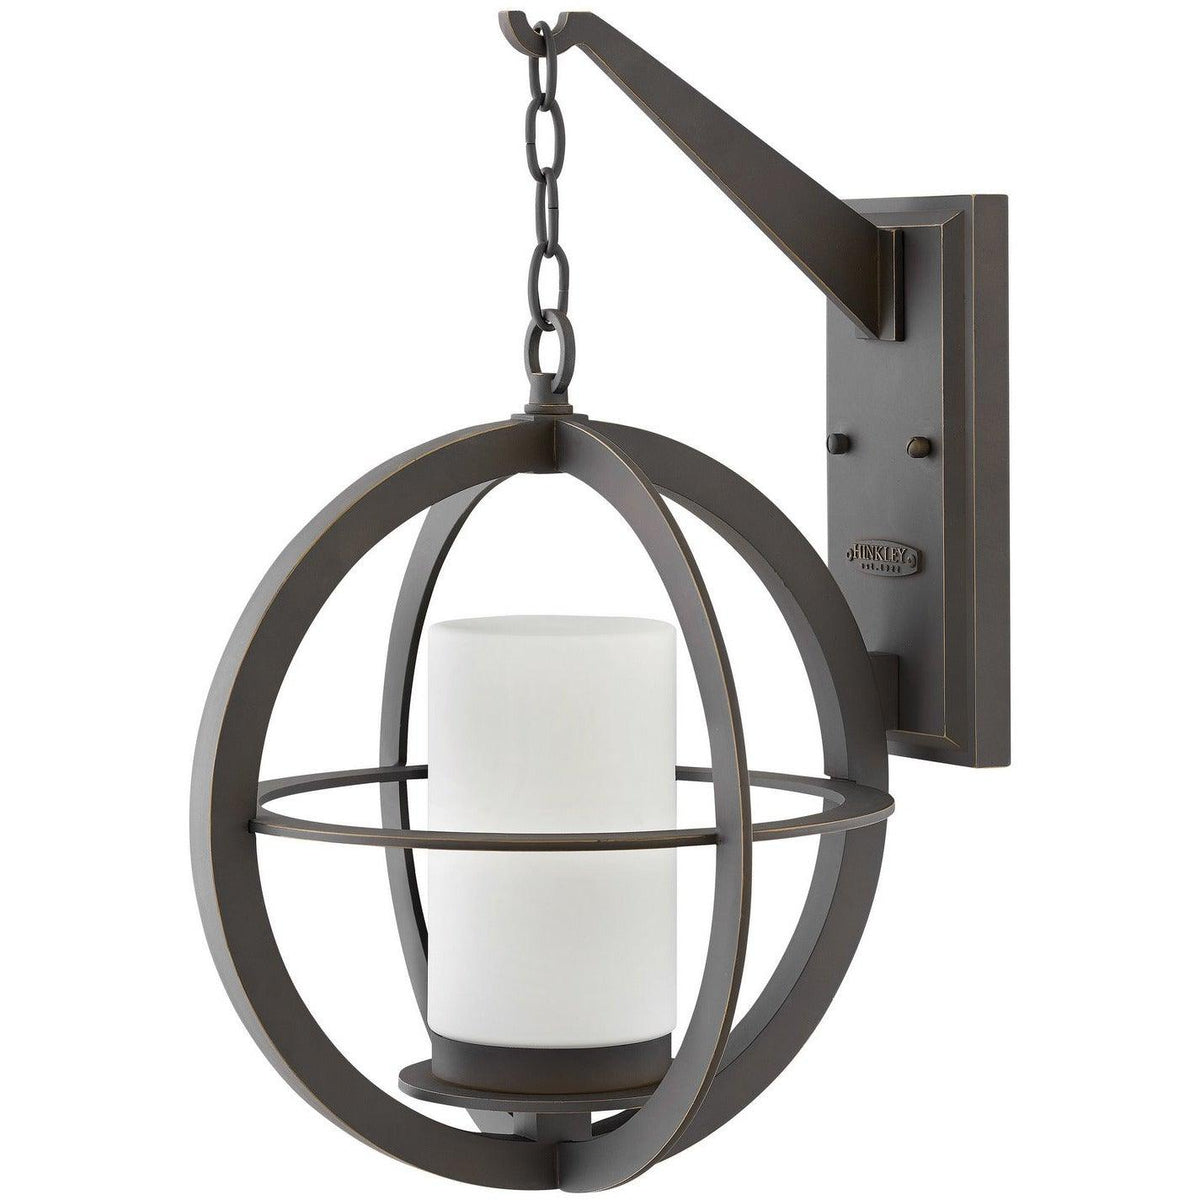 Hinkley Canada - 1015OZ - One Light Wall Mount - Compass - Oil Rubbed Bronze